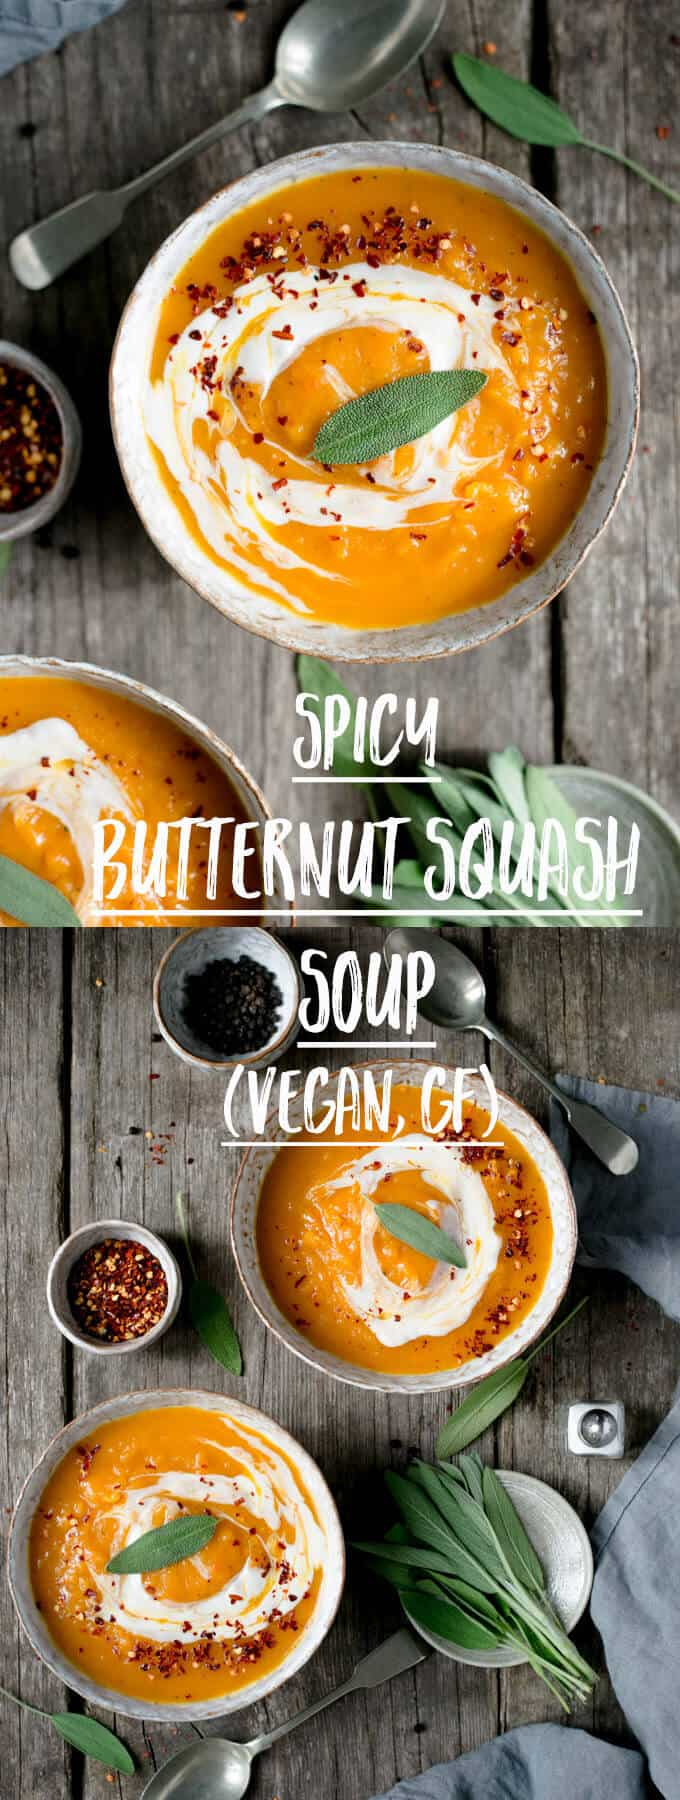 Delicious, velvety smooth spicy butternut squash soup! #vegan #glutenfree #soup #butternutsquash | via @annabanana.co